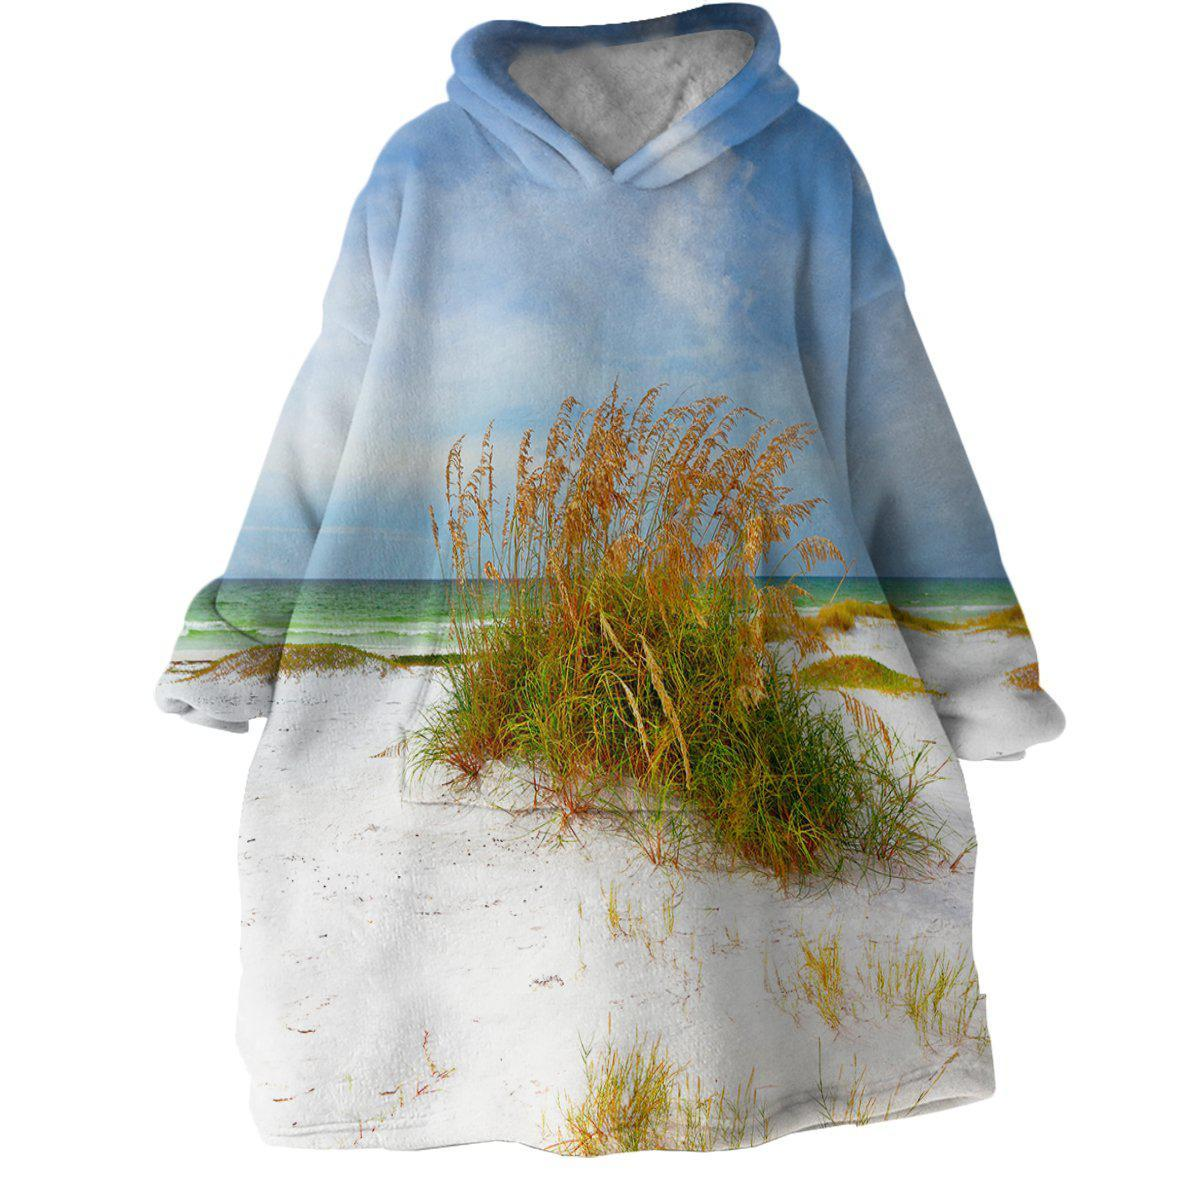 Florida Dreaming Wearable Blanket Hoodie